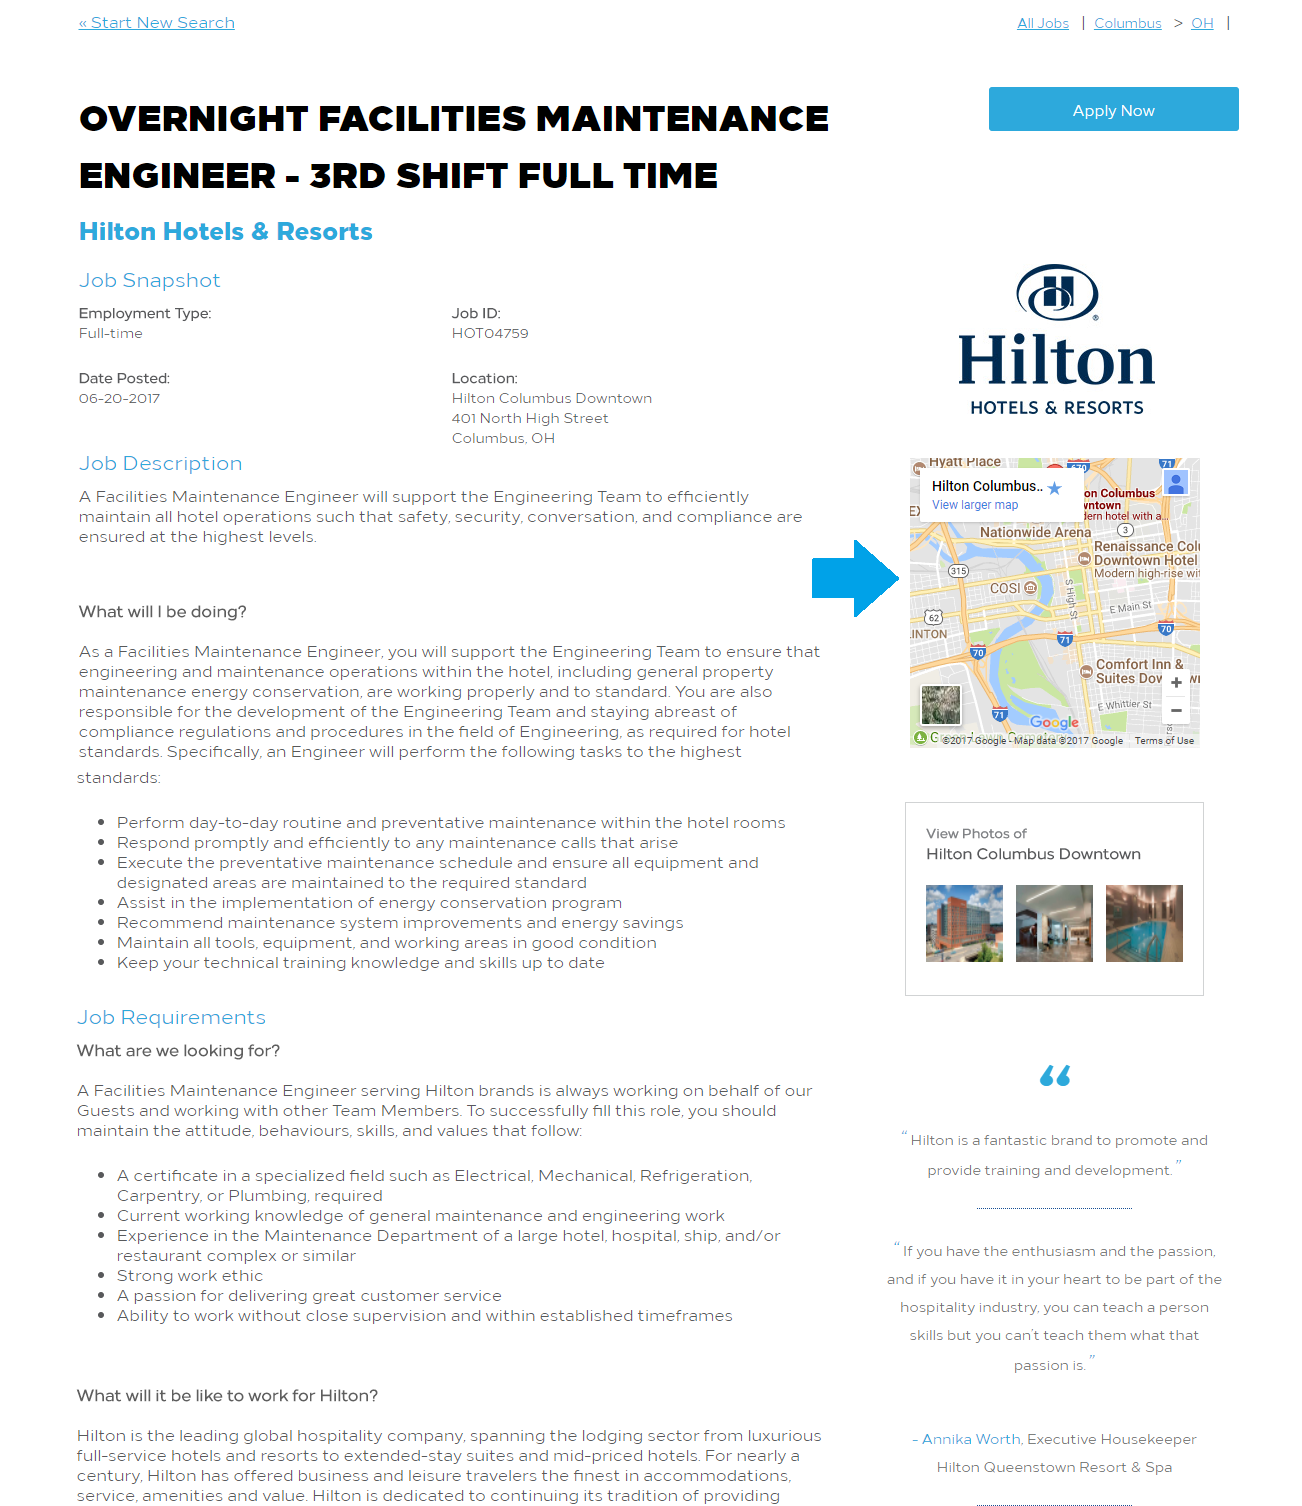 Map on Hilton Job Description